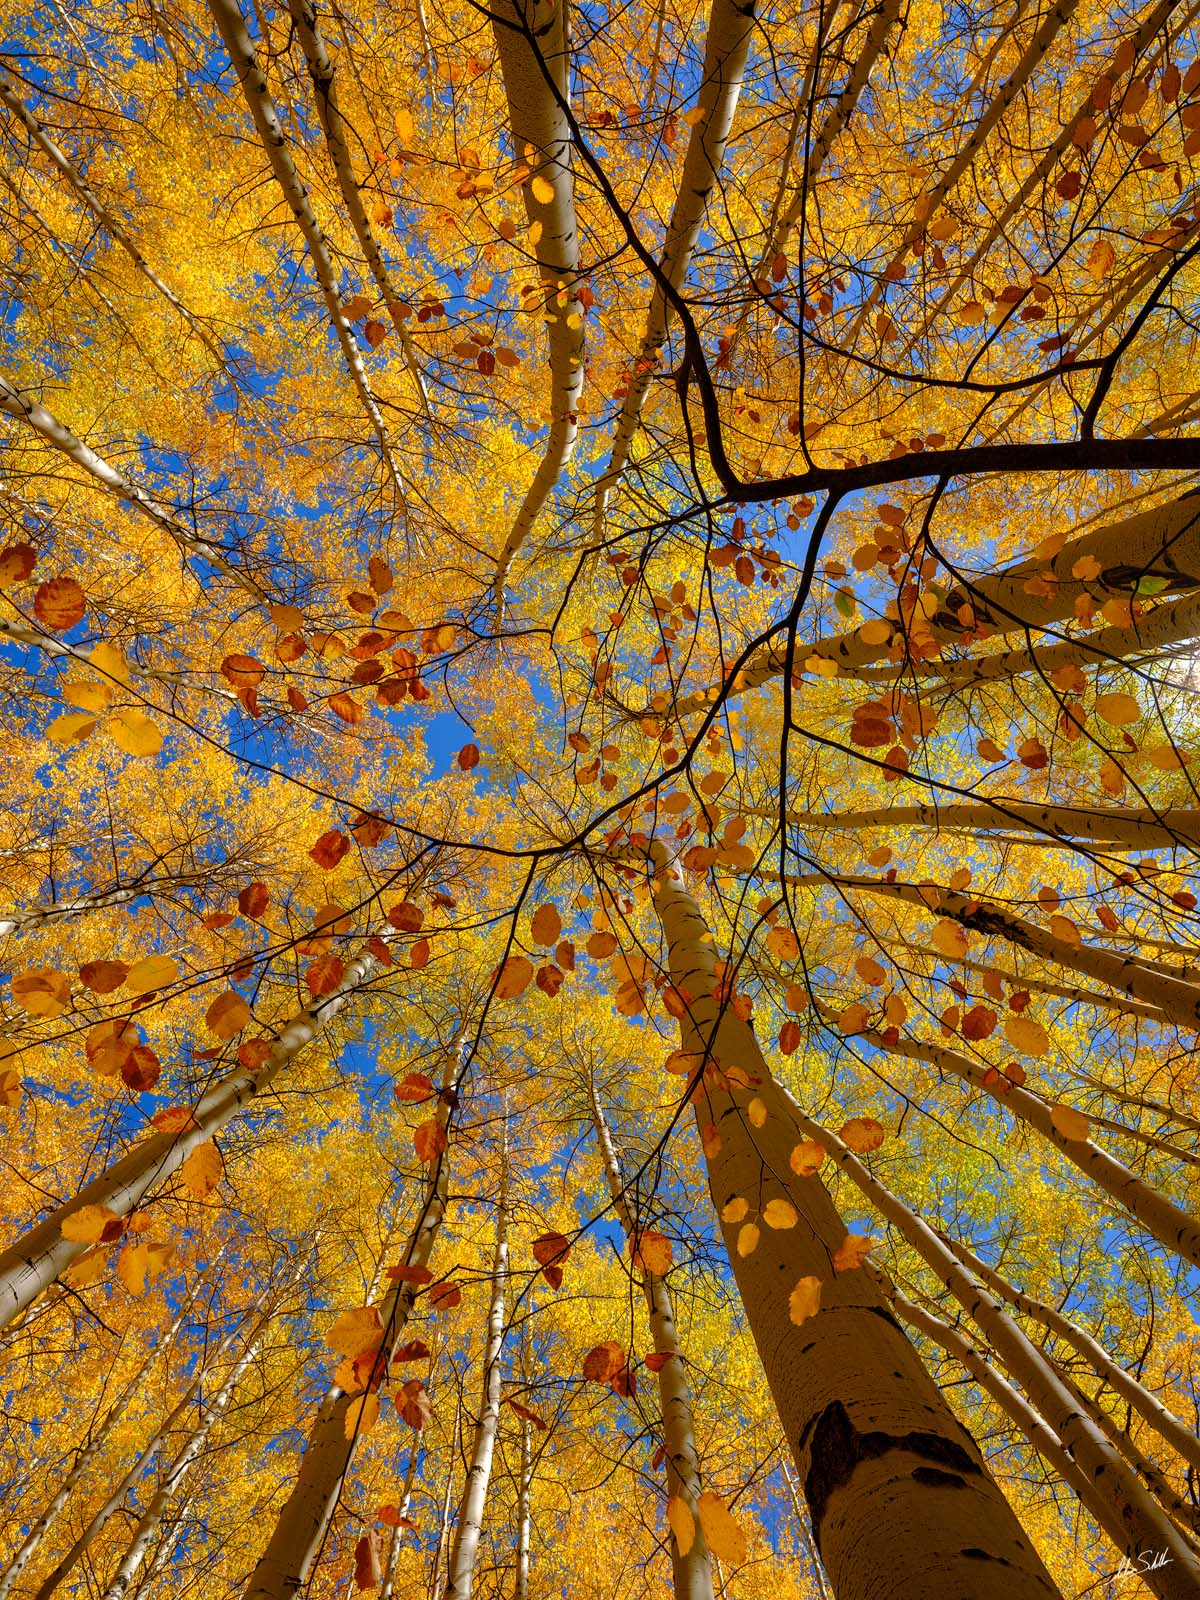 Looking up through a golden canopy of fall foliage courtesy of aspen trees in the San Juan Mountains of southwestern Colorado...